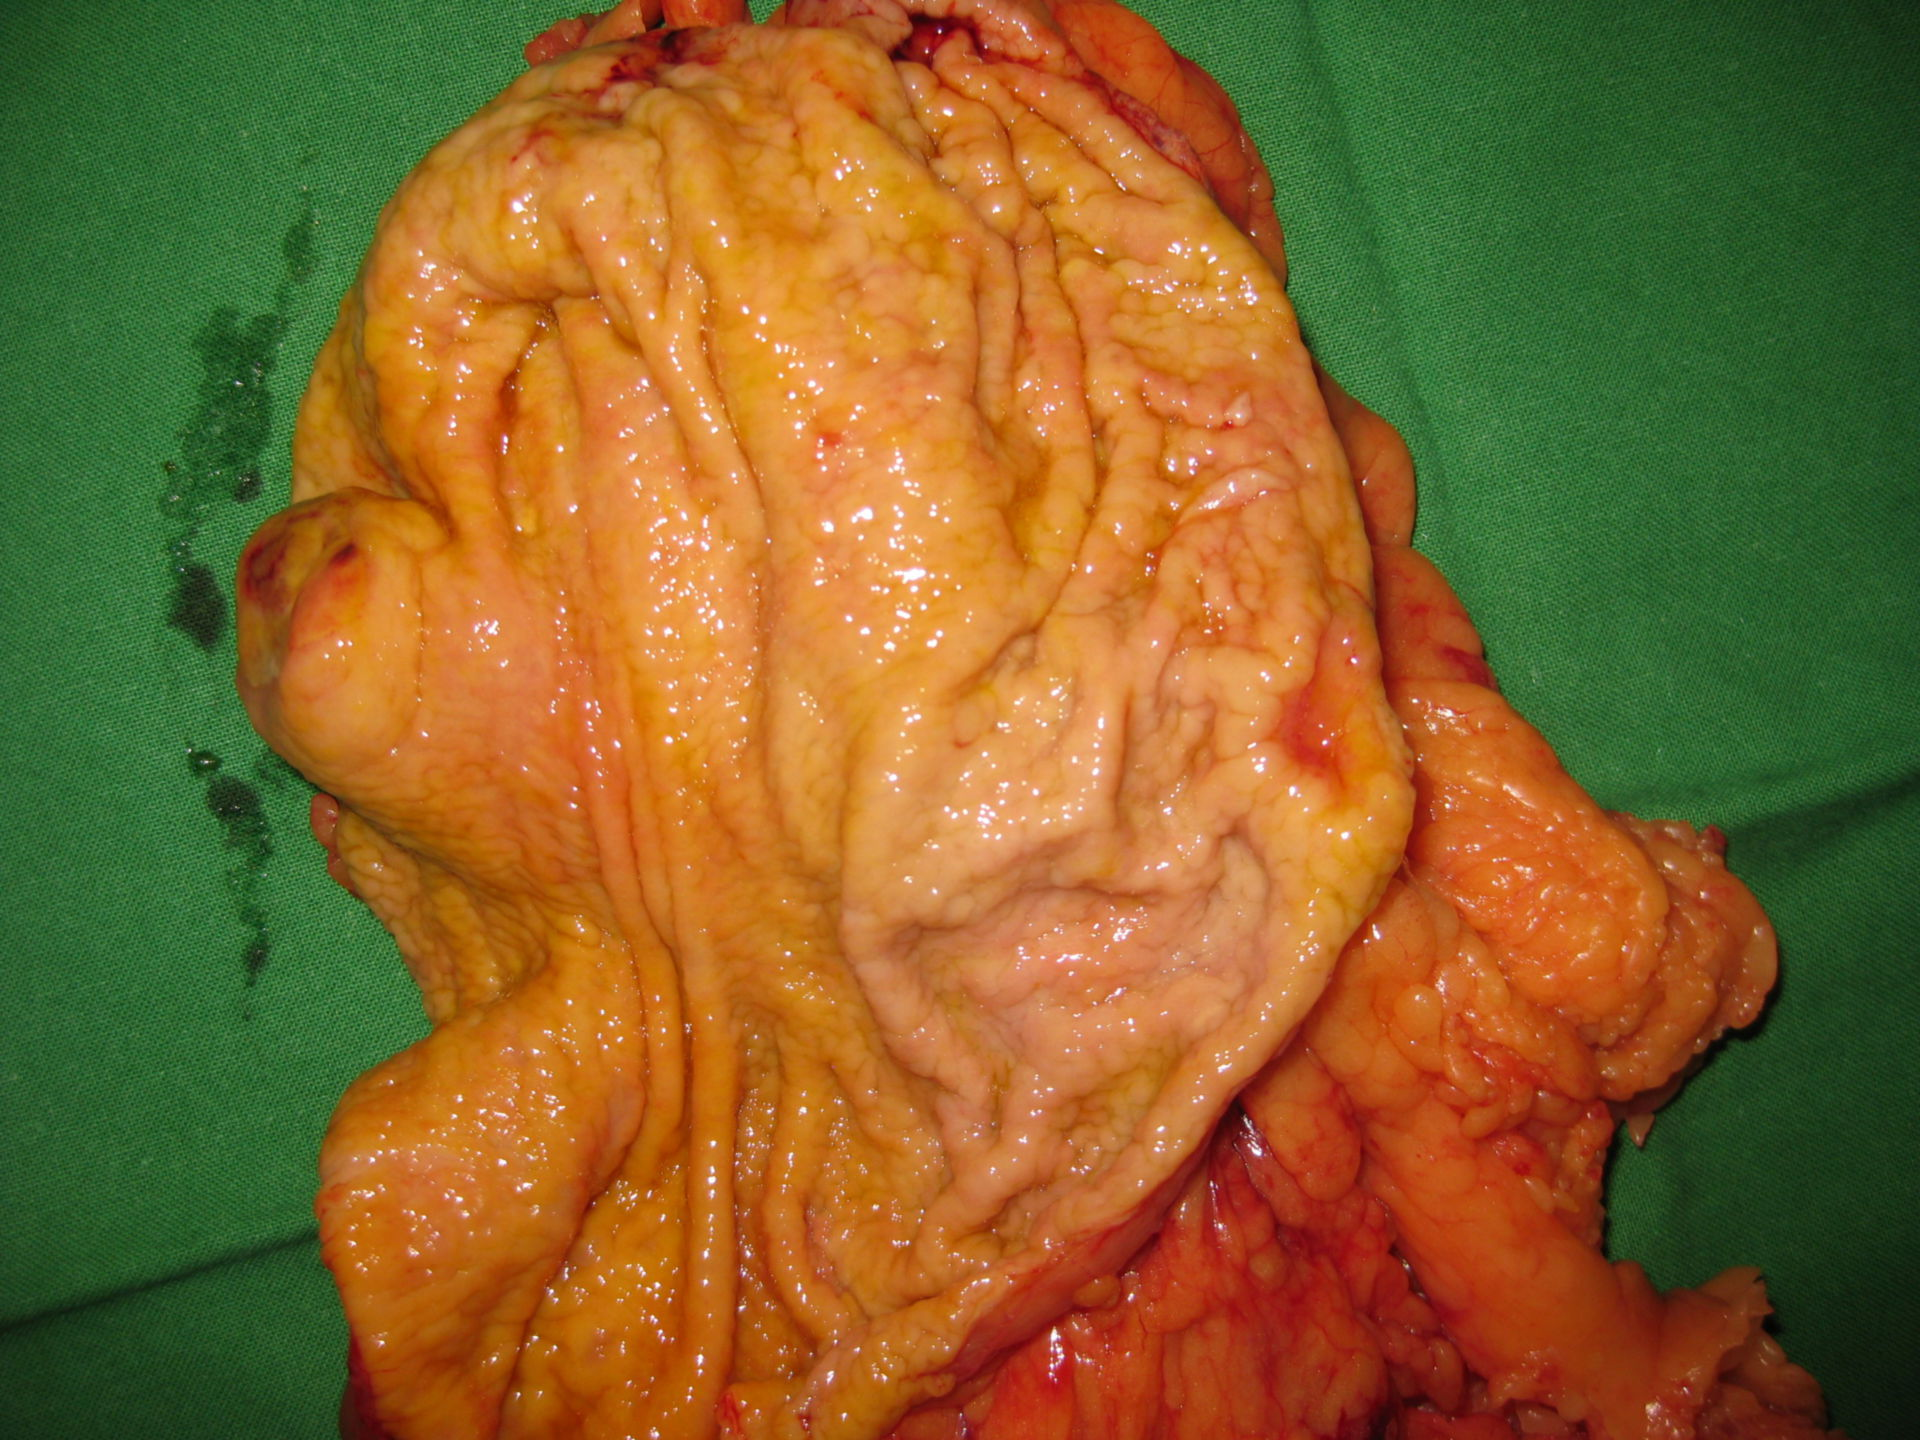 GIST and carcinoma (T2)